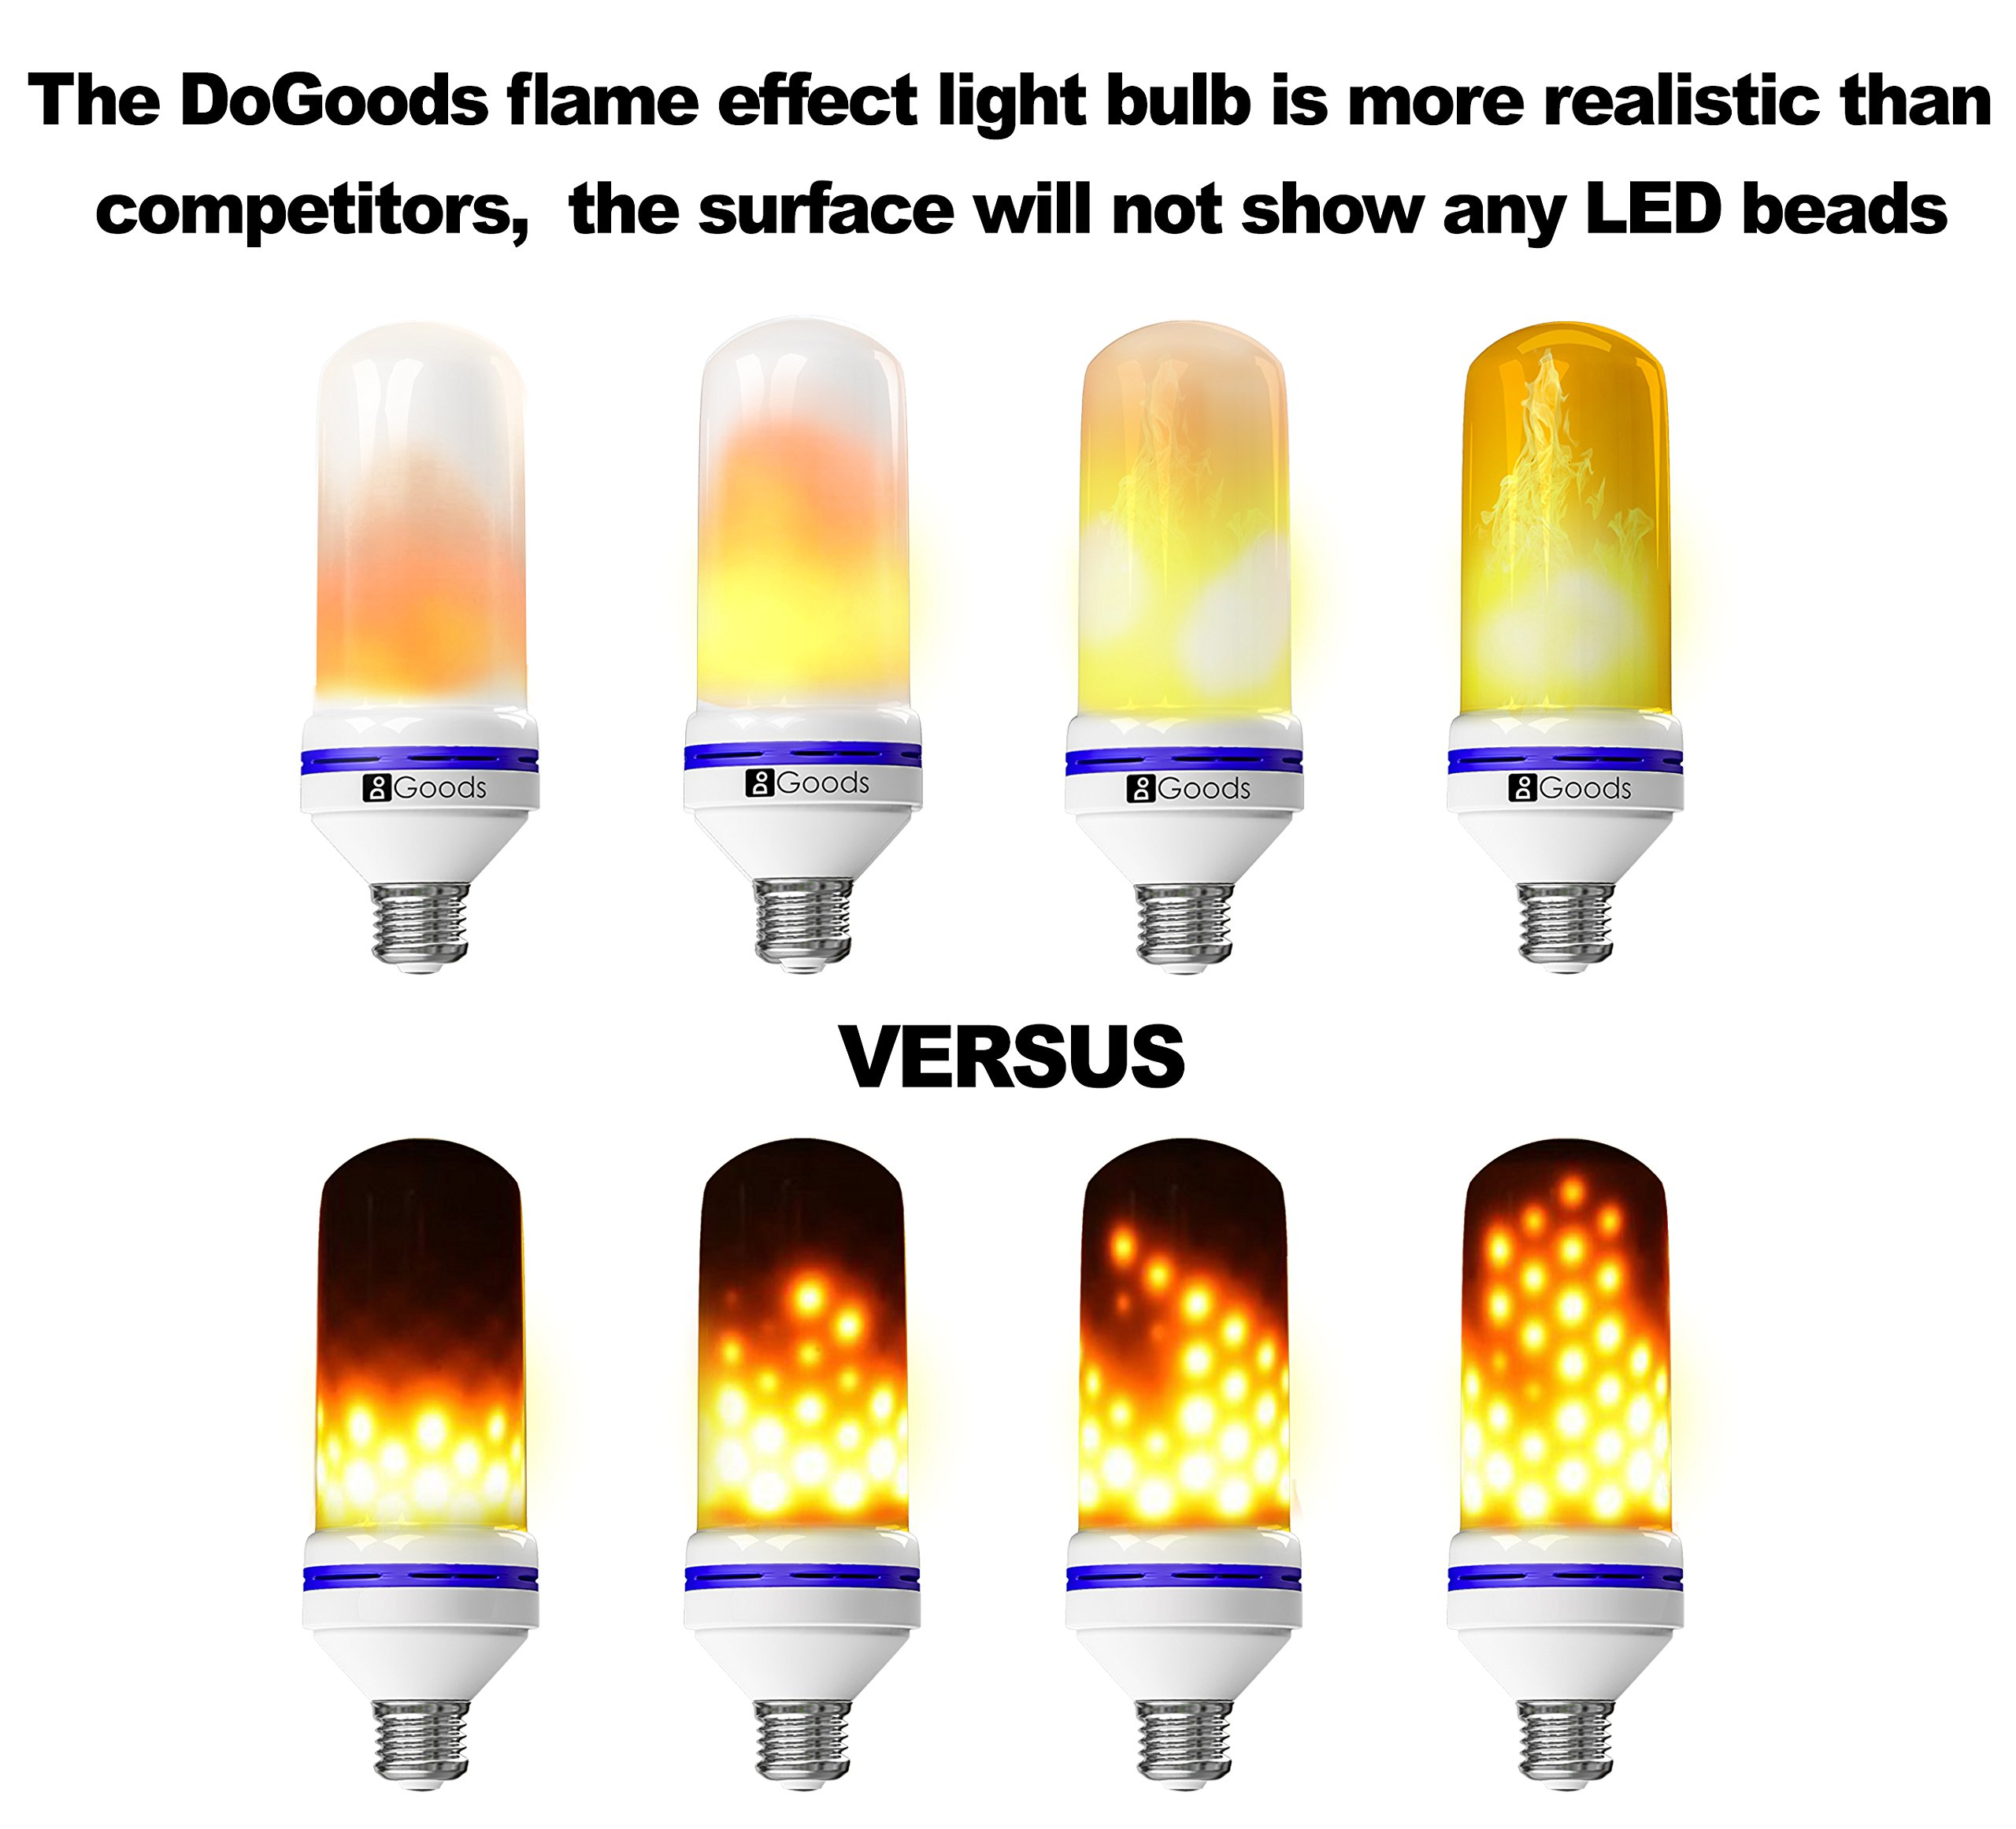 LED Flame Effect Light Bulb - Flickering Warm Flame Bulbs, E26 Standard Base, 105pcs 2835 LED Beads, Realistic Flaming Fire, Perfect Romantic Decorative Lighting at Home, Candelabra, Patio or Bar